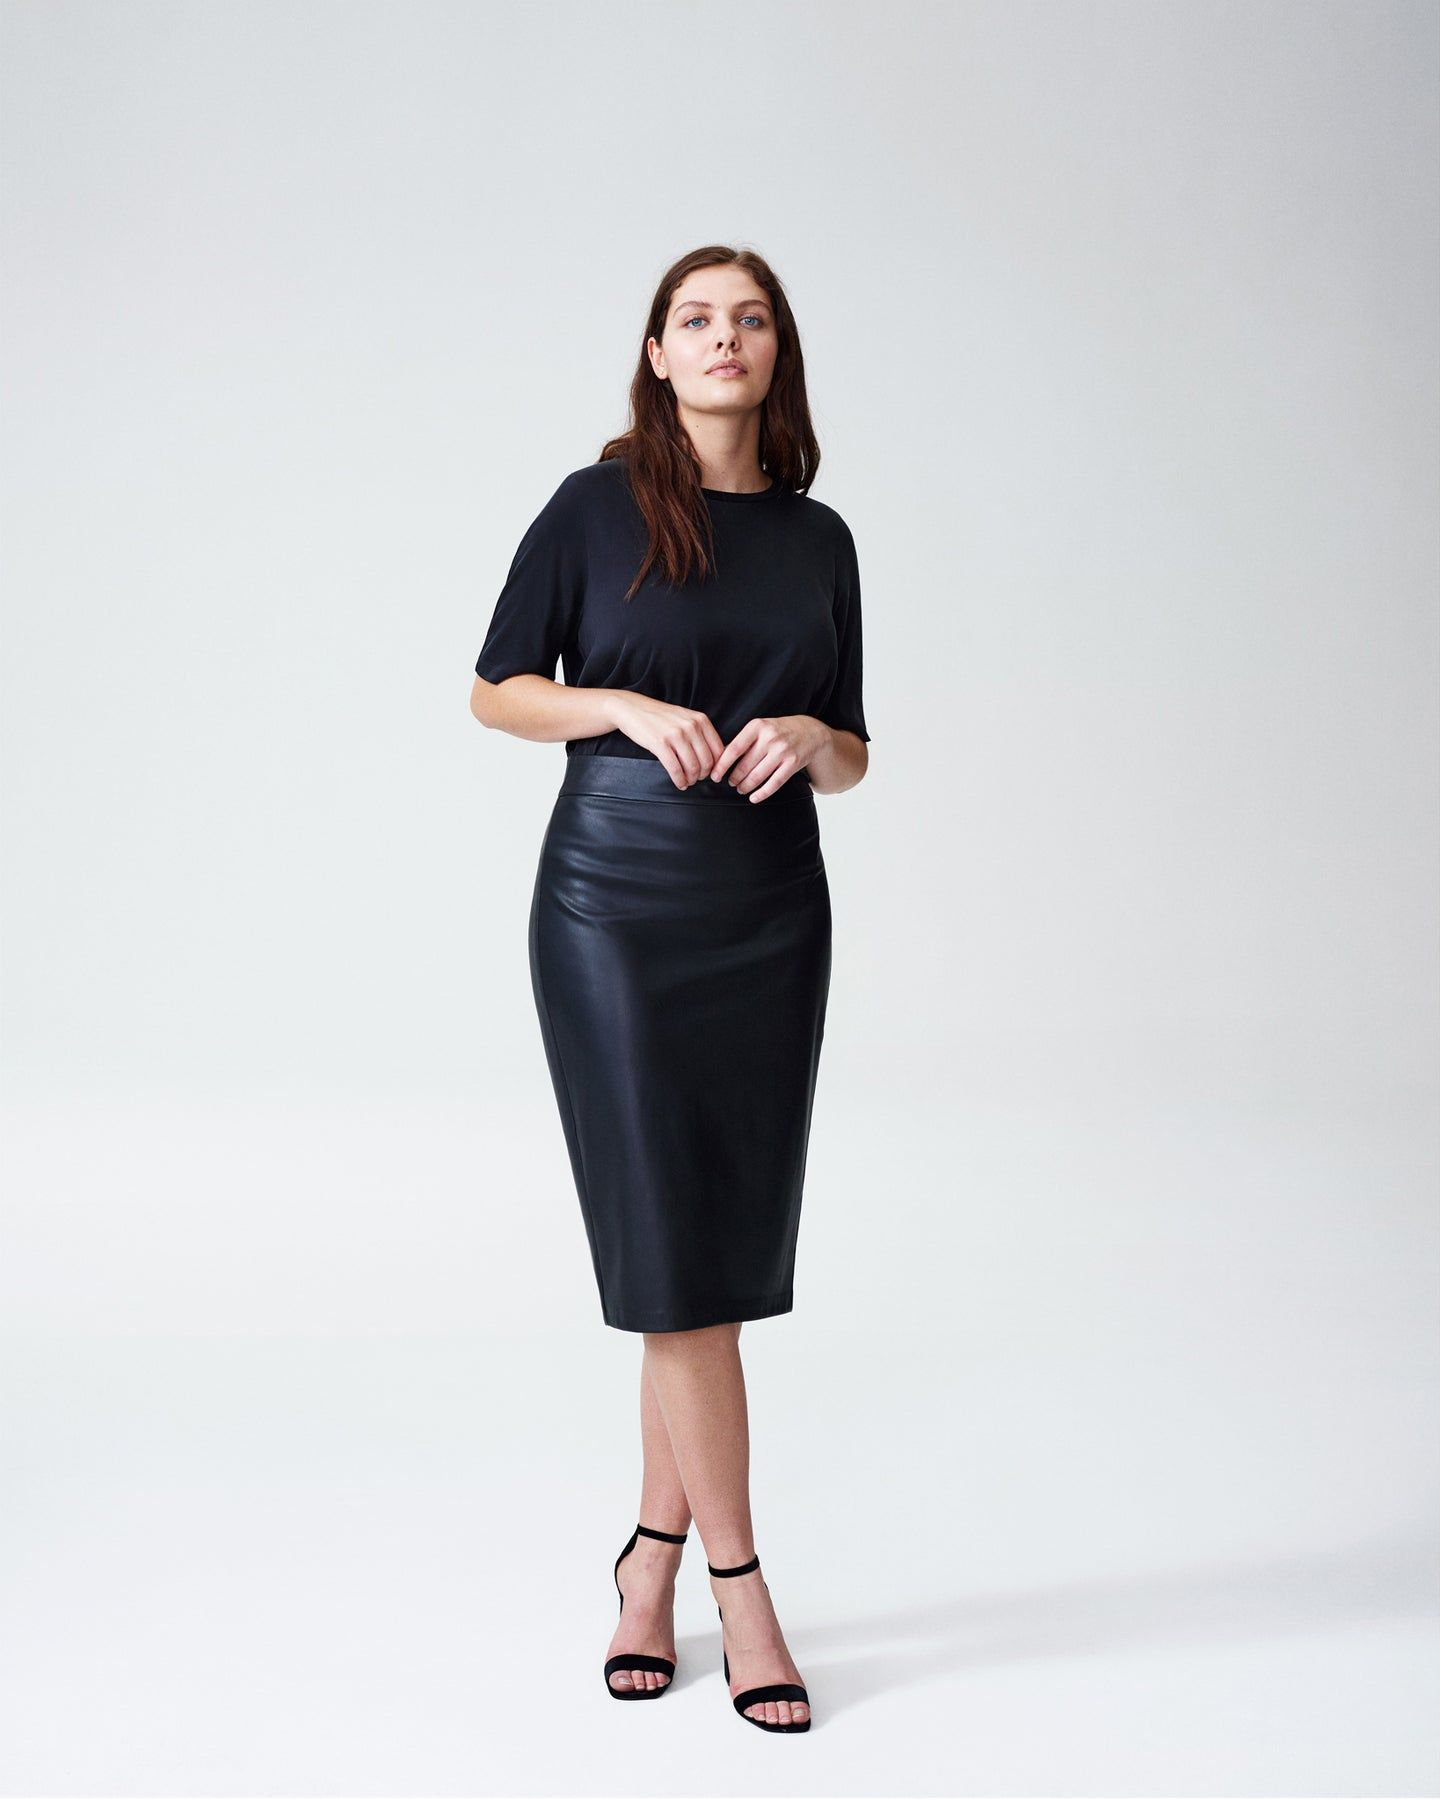 Sillaro Vegan Leather Pencil Skirt - Black - image 0